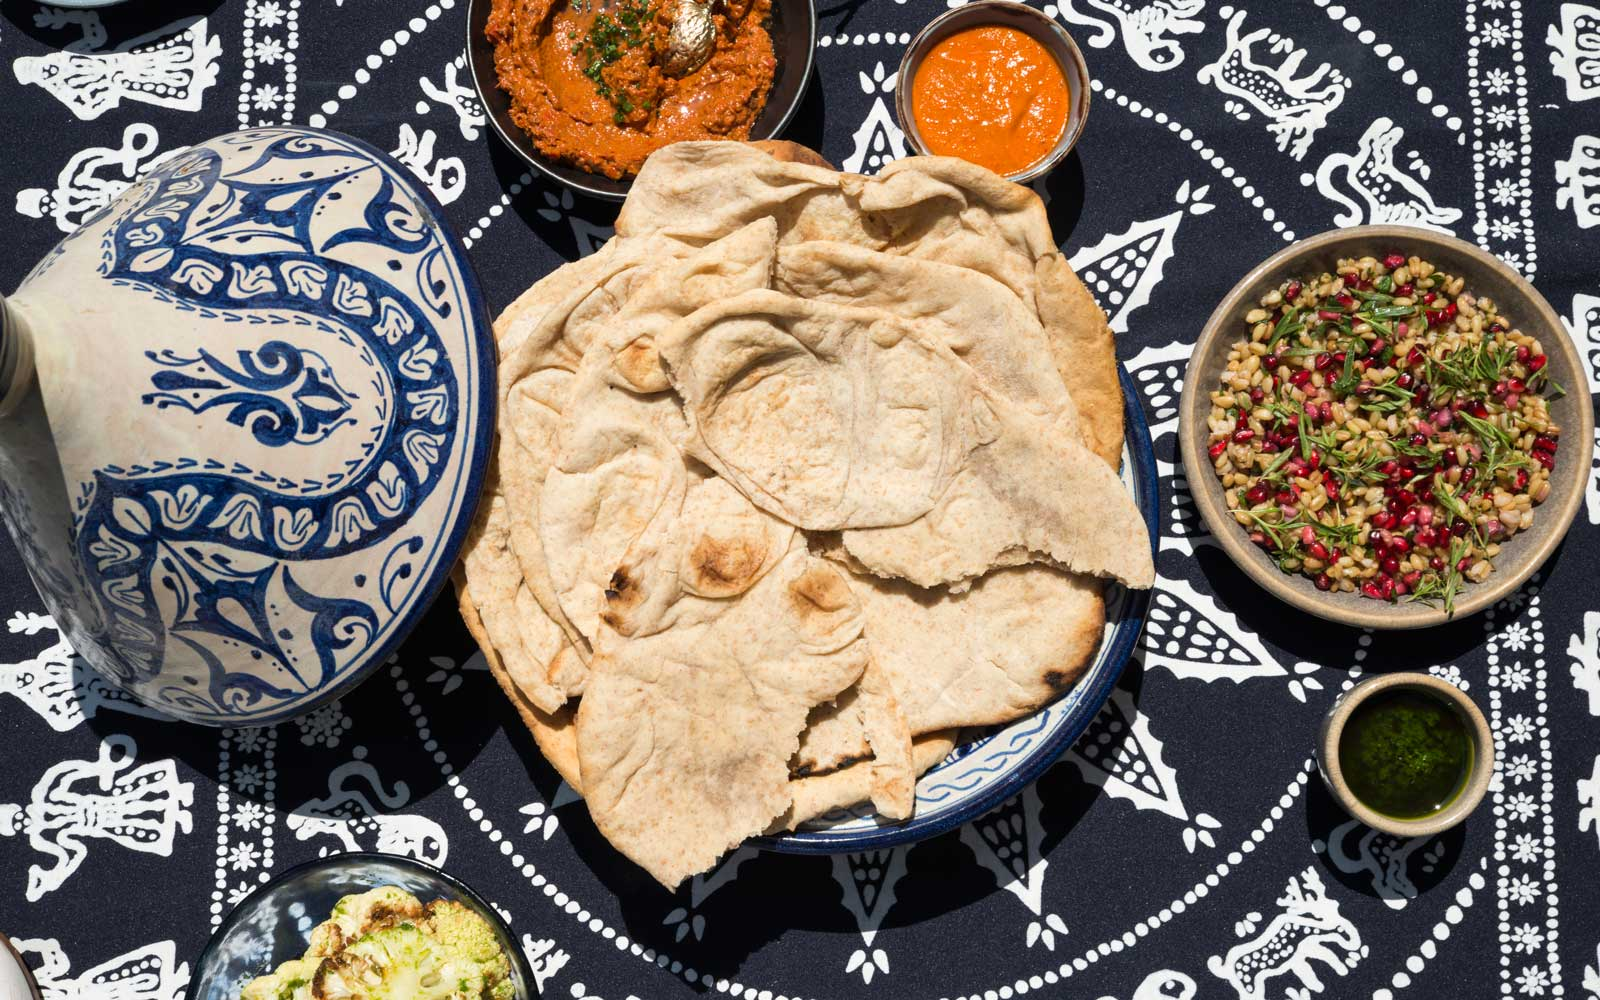 Flatbread and dips at Maydan restaurant in Washington, DC